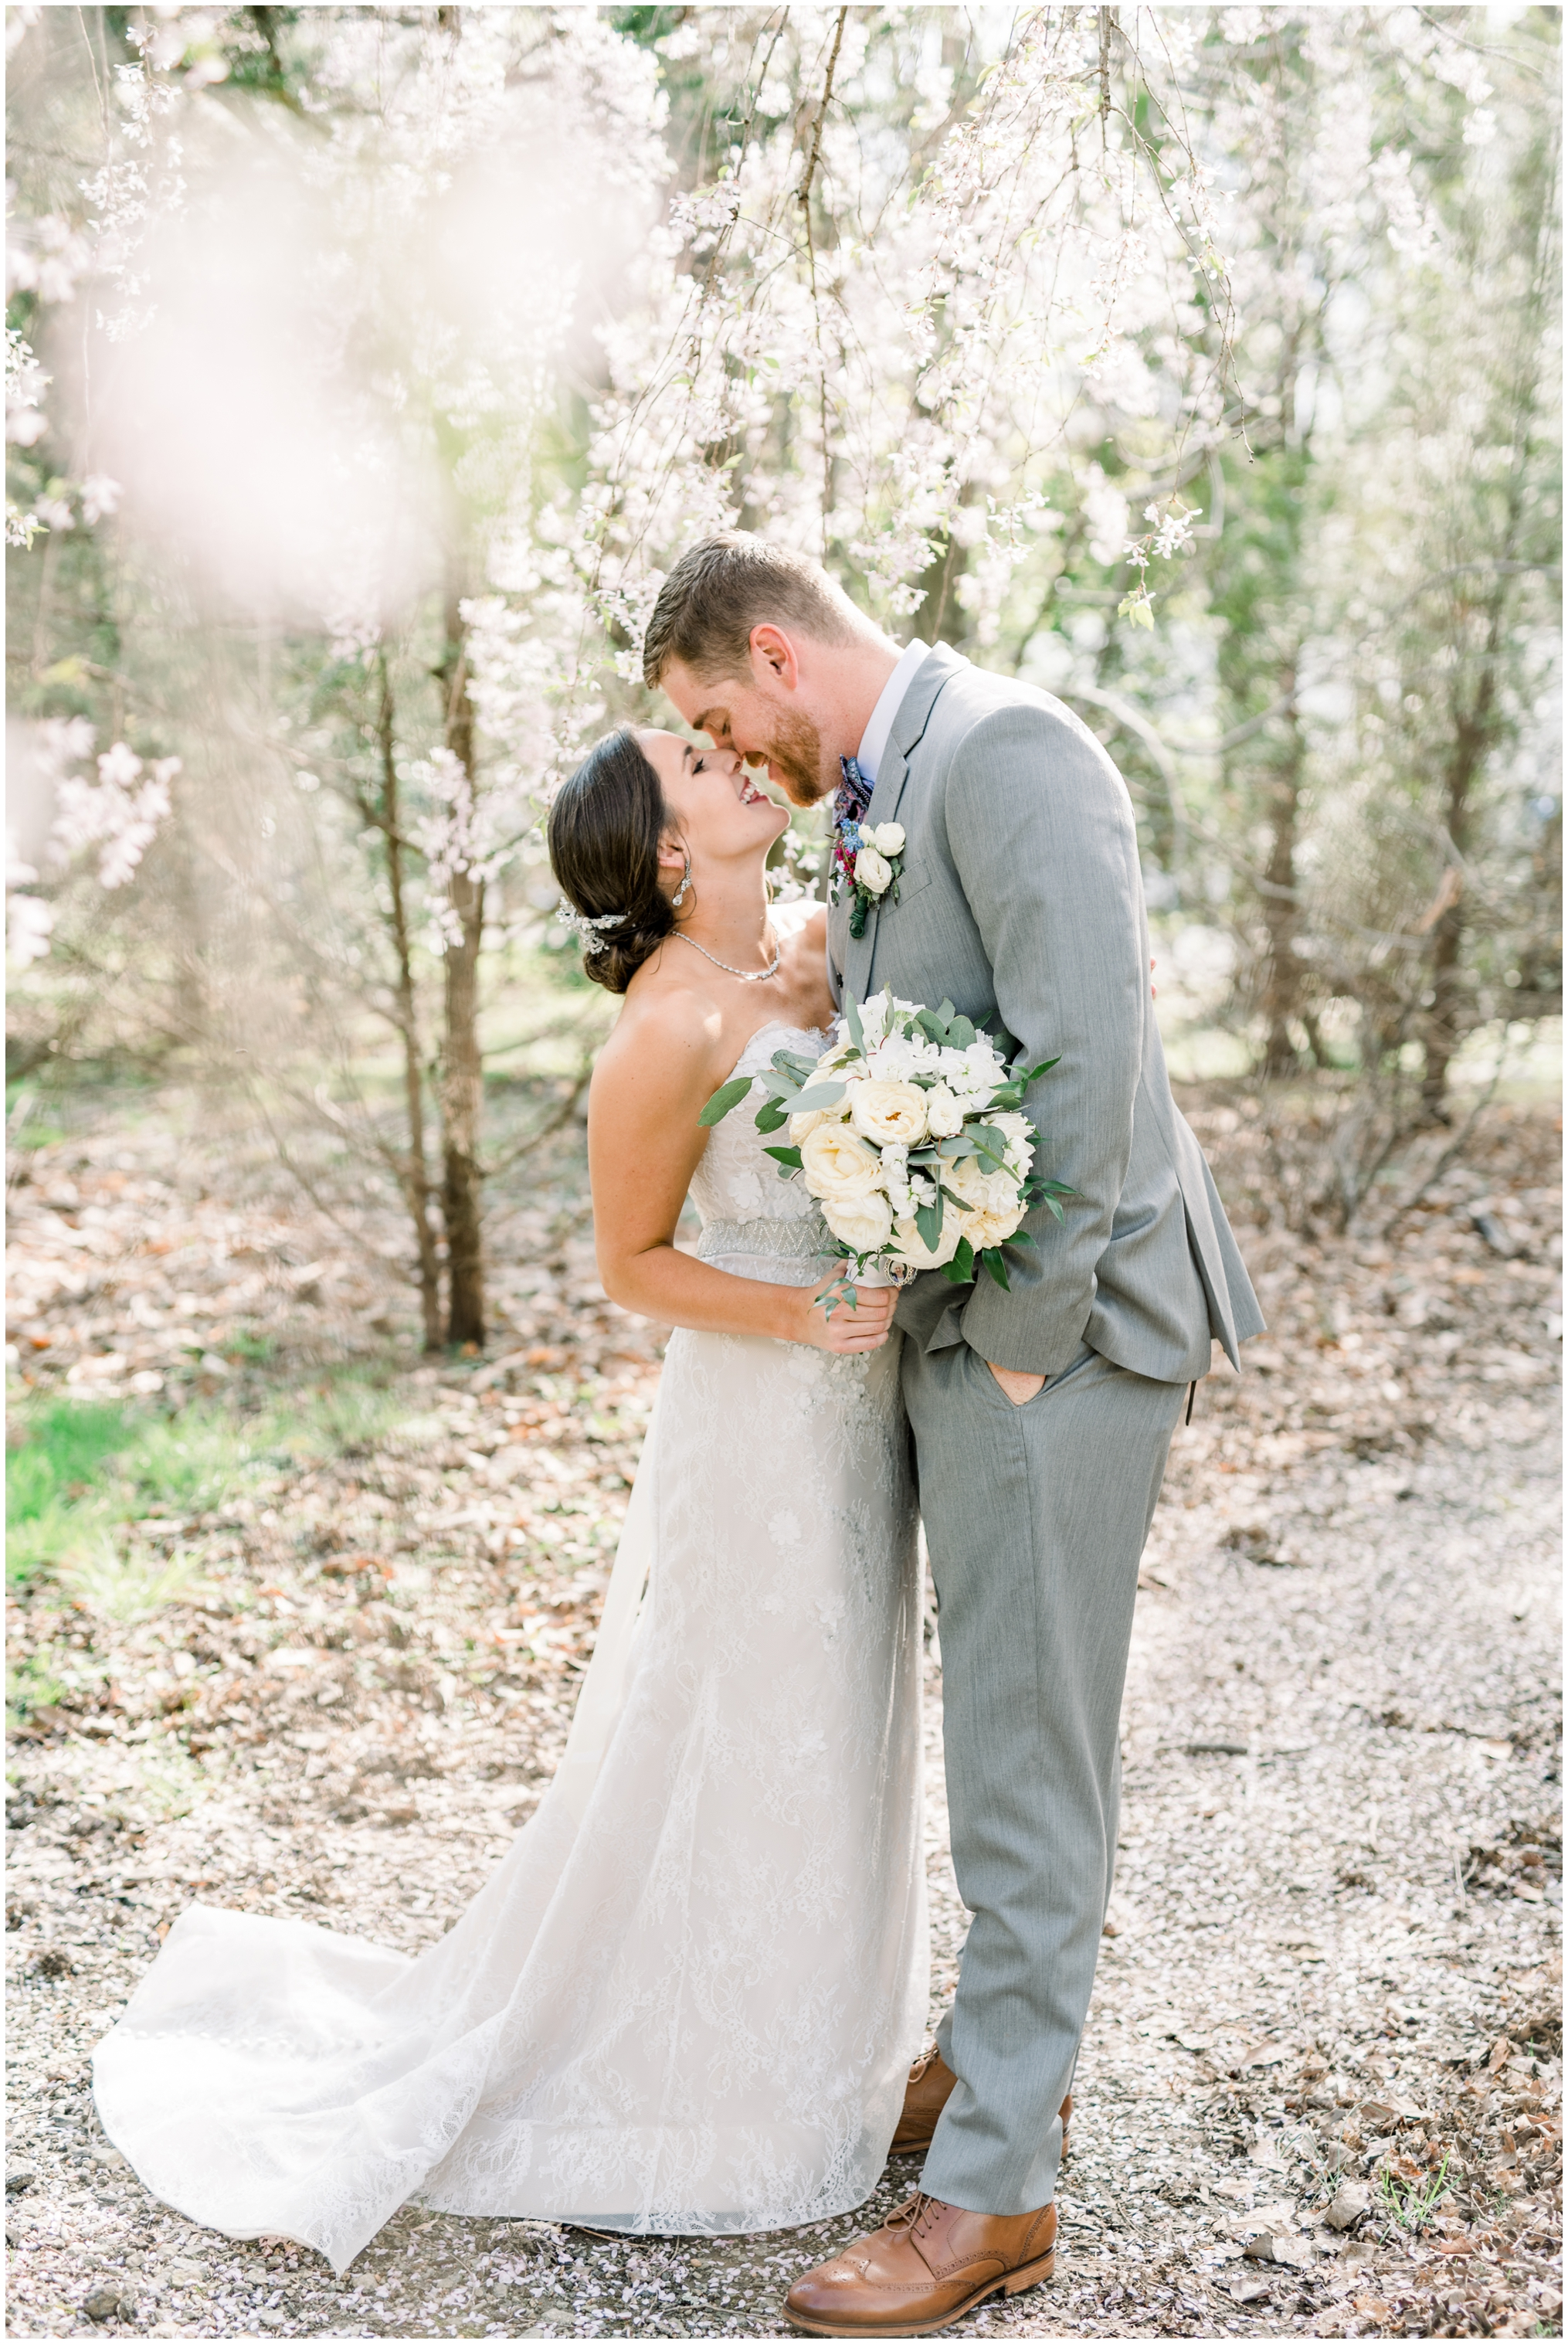 Krista Brackin Photography | April Wedding at The Carriage House at Rockwood Park_0076.jpg